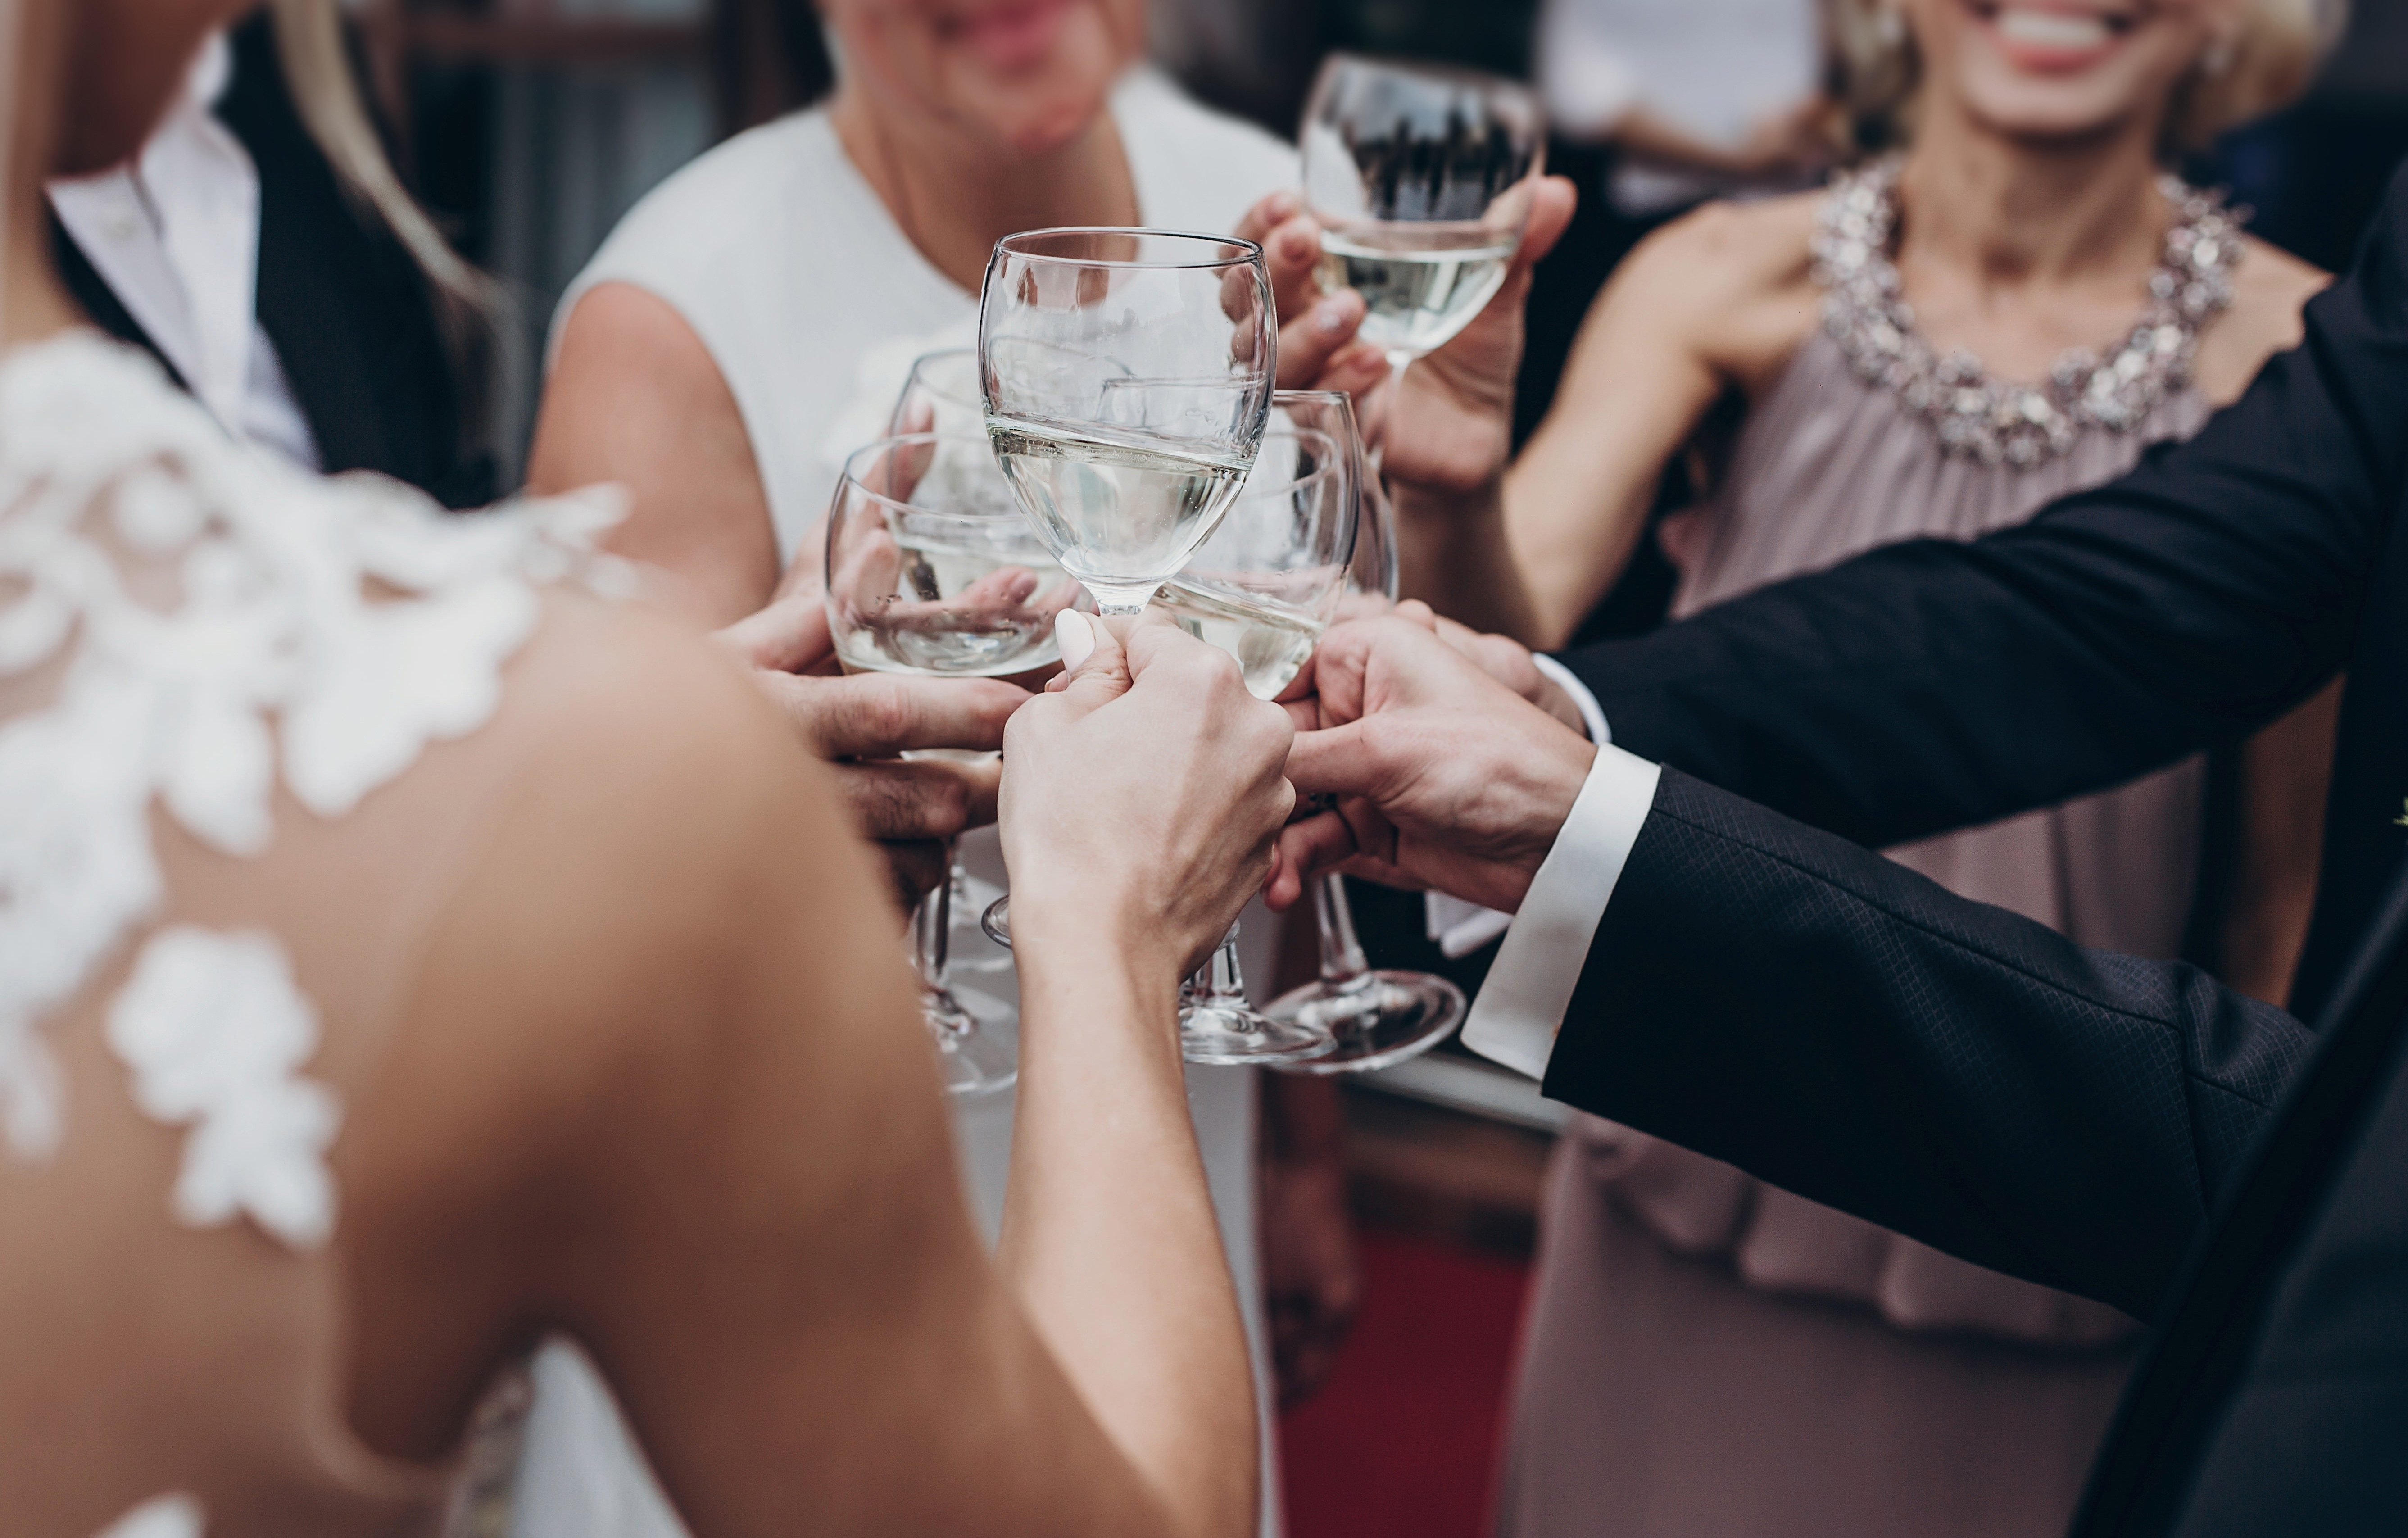 christmas luxury celebration feast. champagne and wine glasses in hands at luxury wedding reception at restaurant. guests toasting and cheering at stylish celebration. space for text